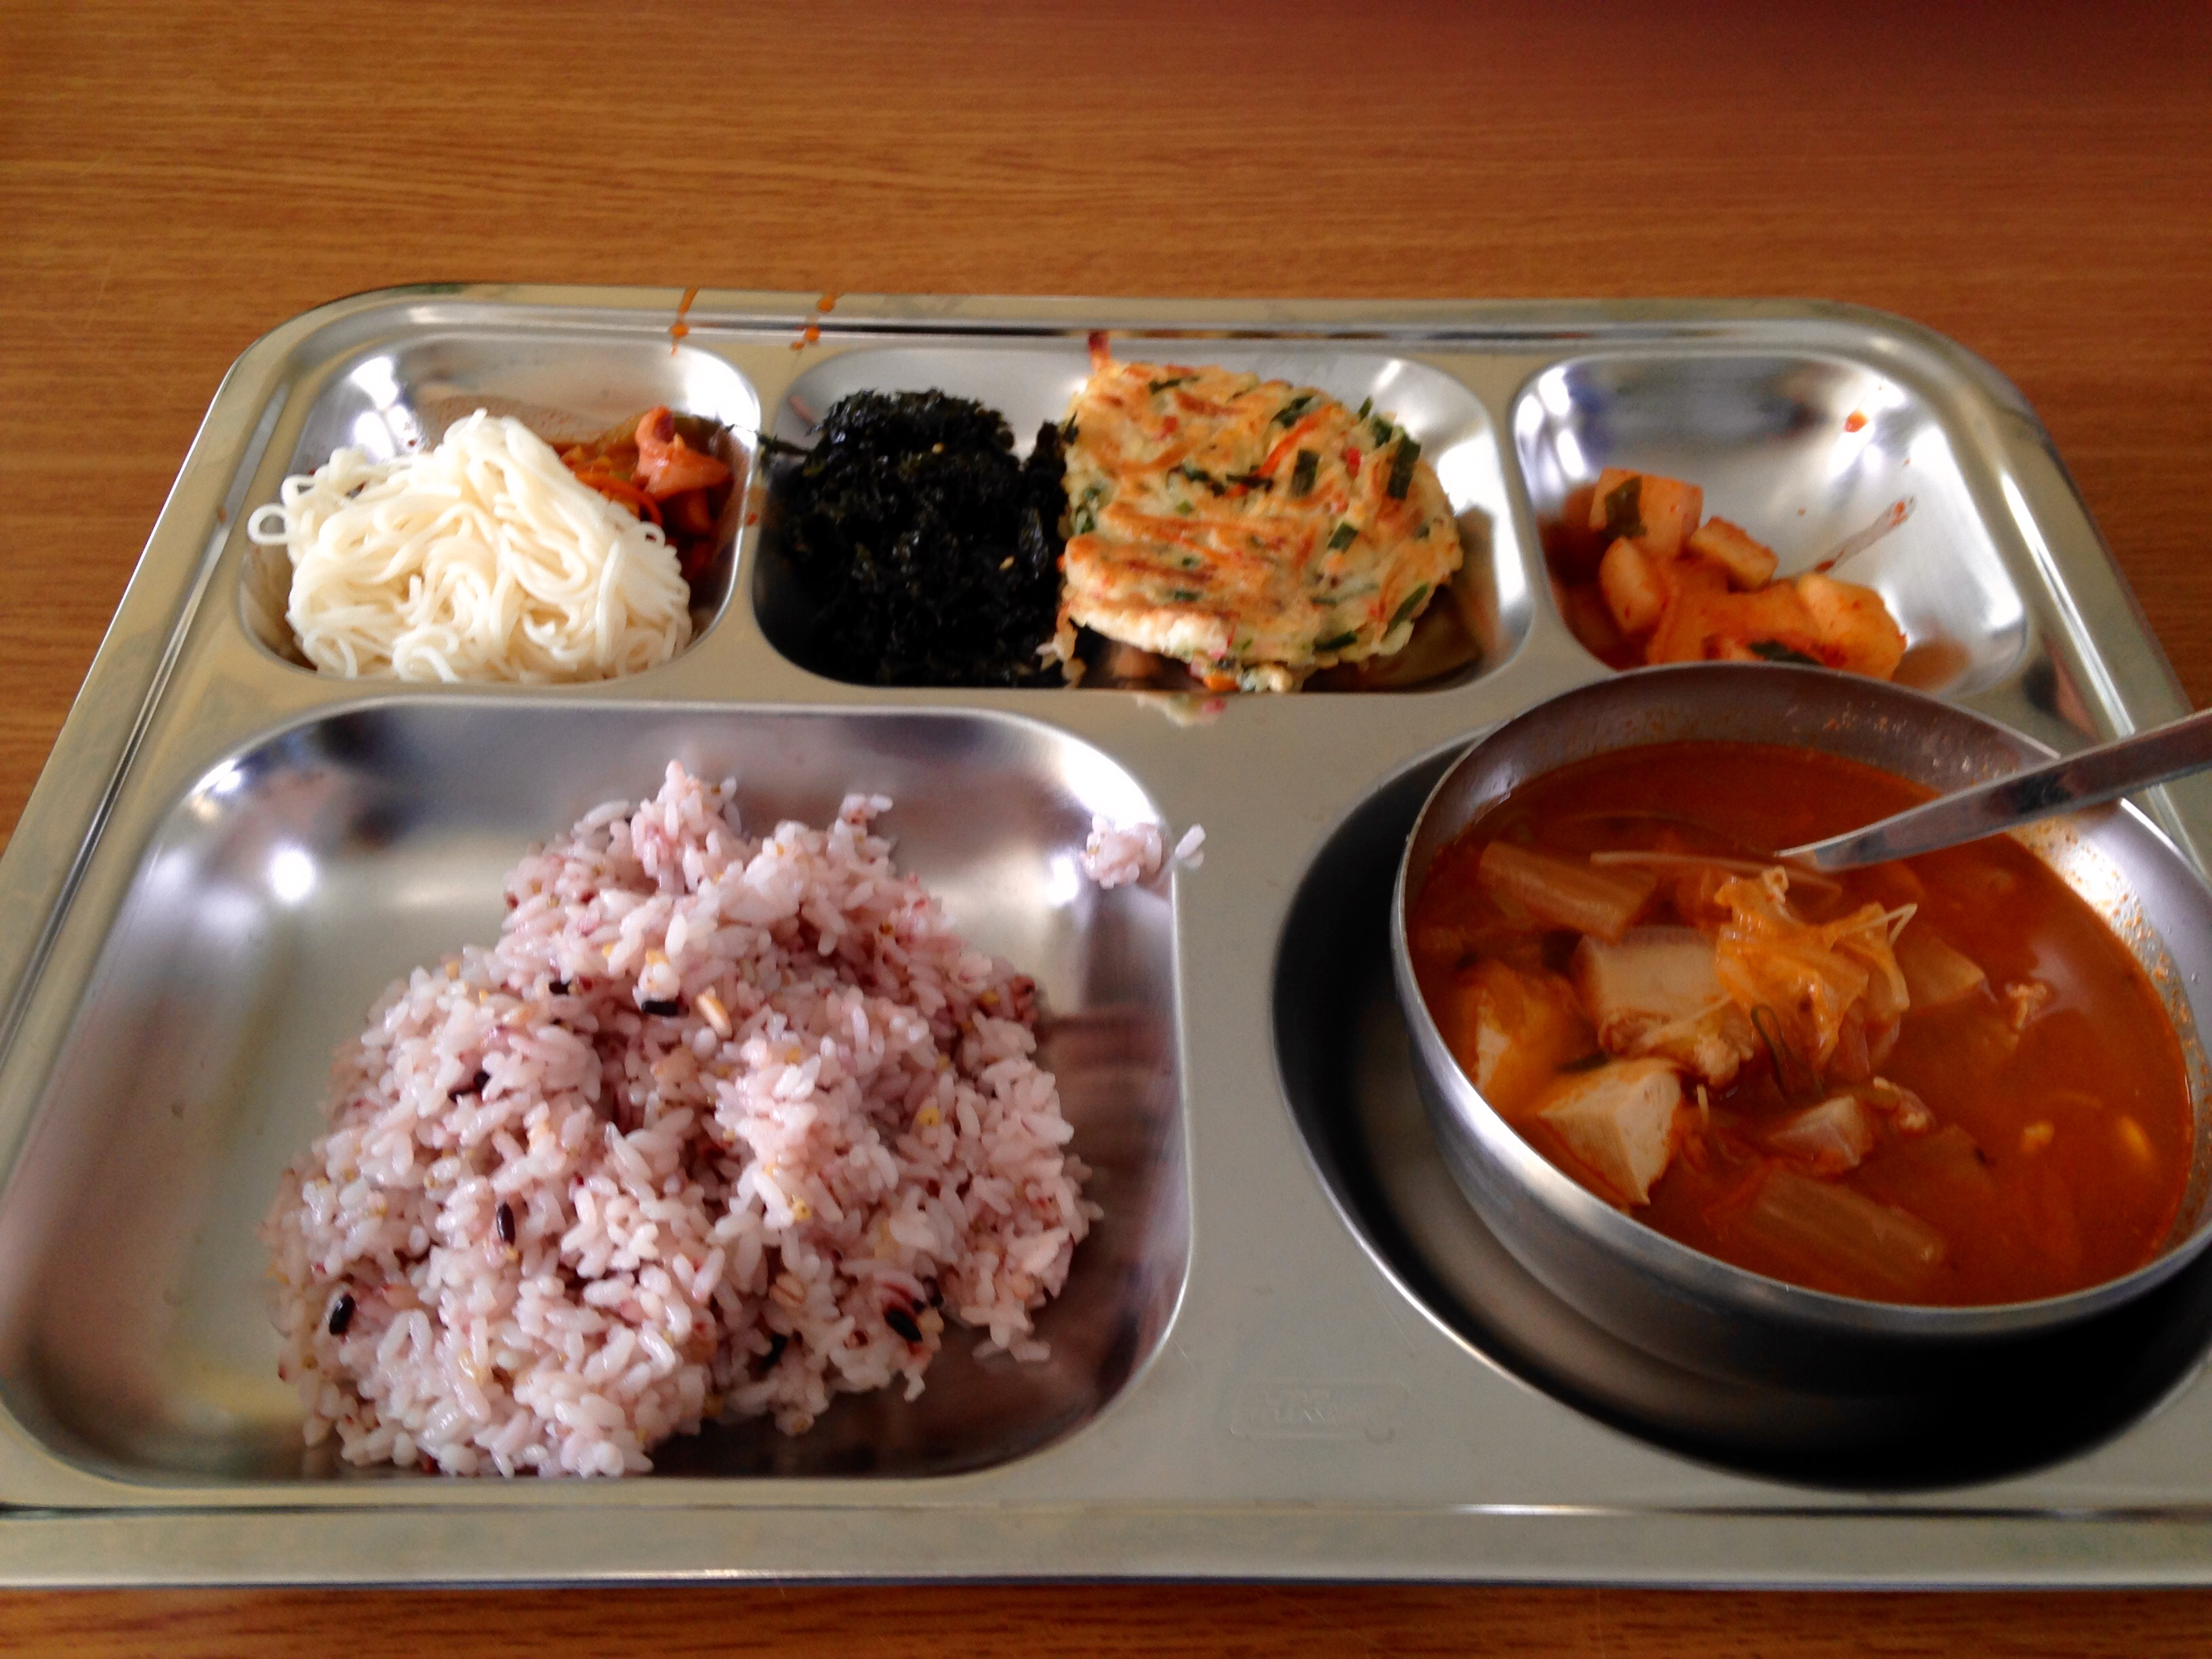 school lunches in south korea the huffington post 2016 03 13 1457844185 5587314 fullsizerender24 jpg